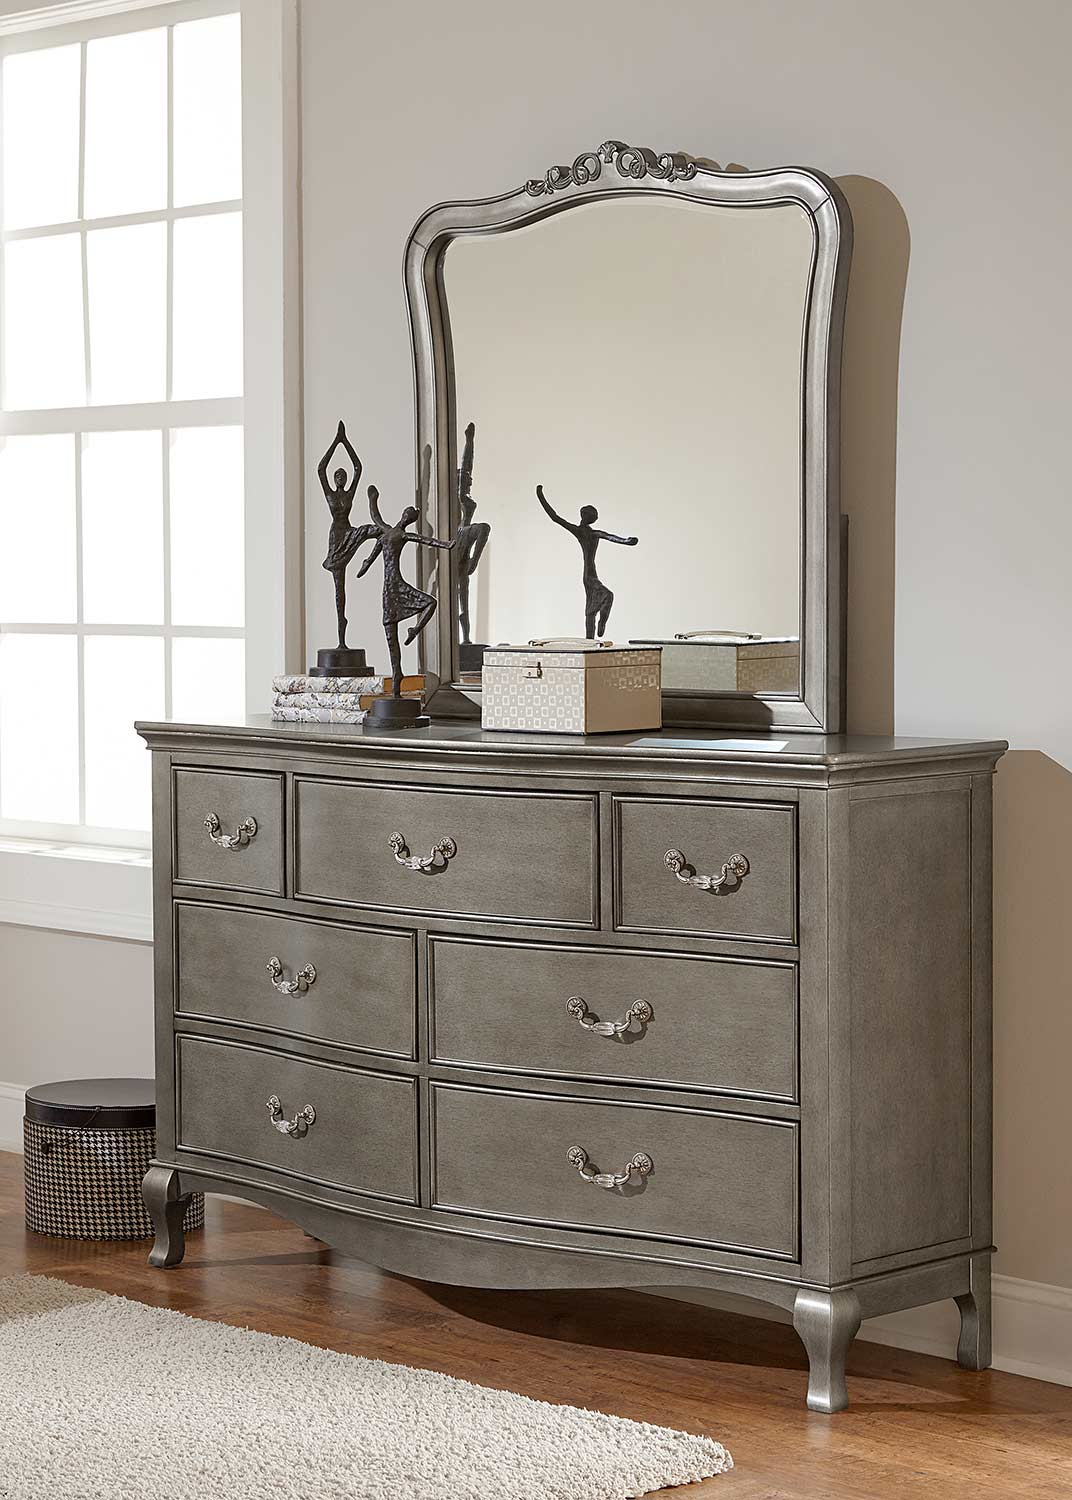 NE Kids Kensington Dresser with Mirror - Antique Silver